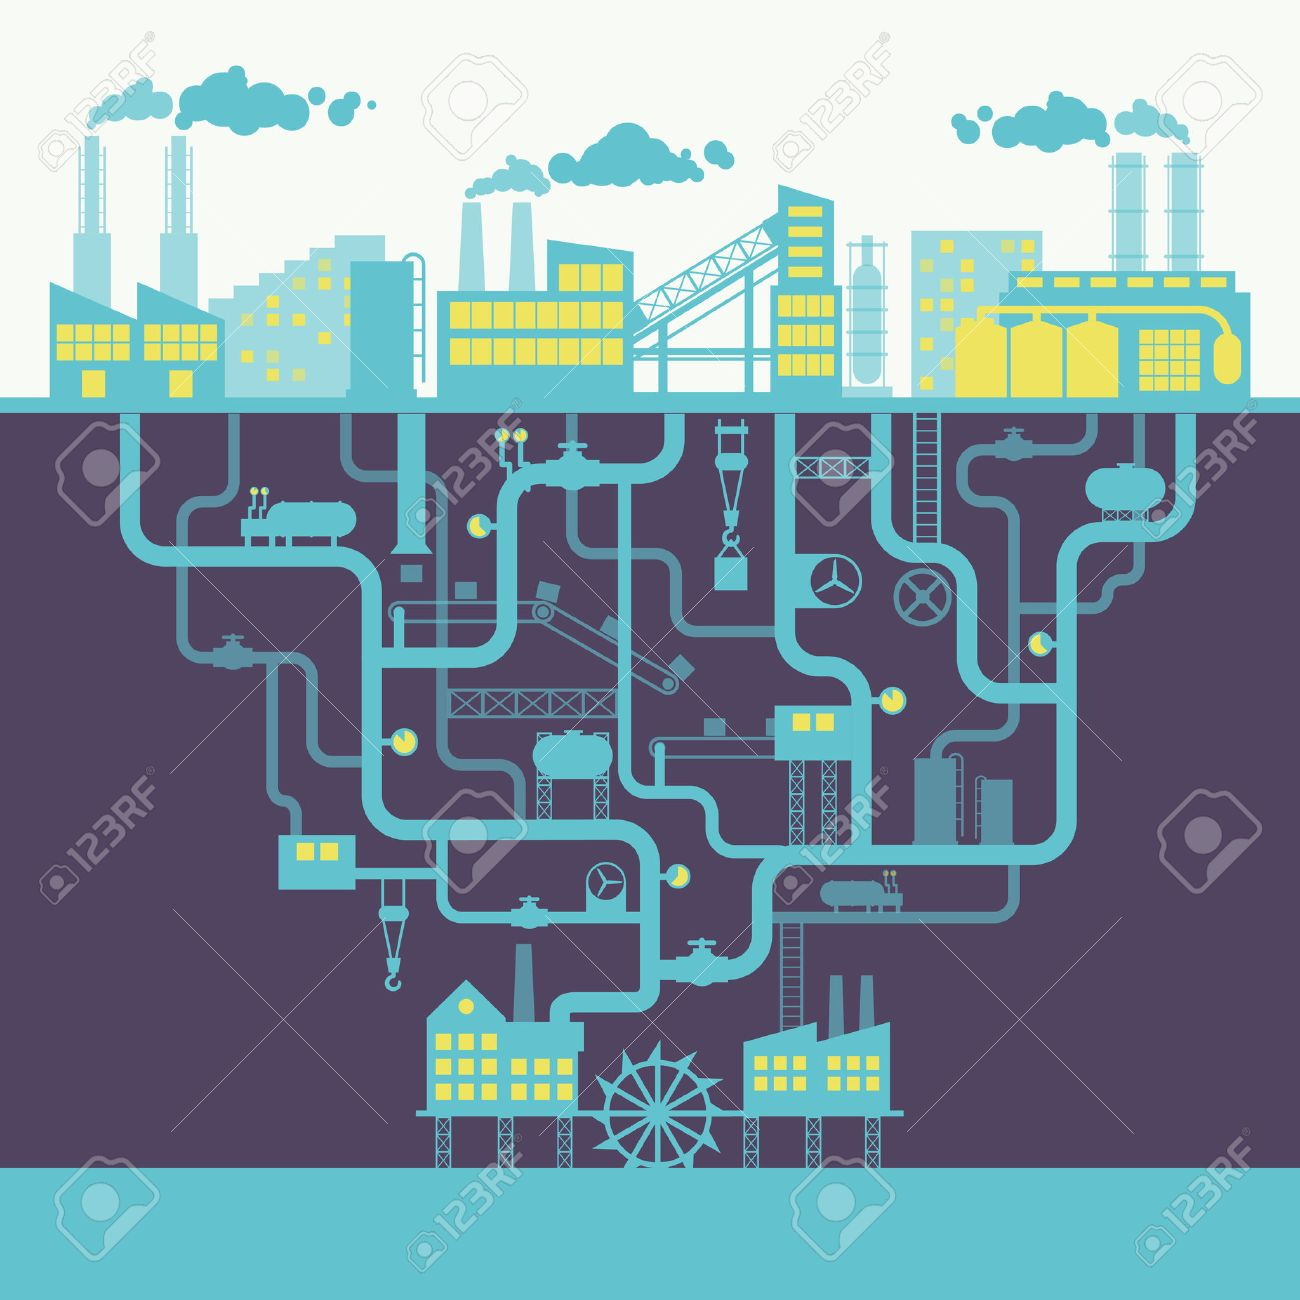 Industrial building factory or manufacturing plant background print illustration - 27147312